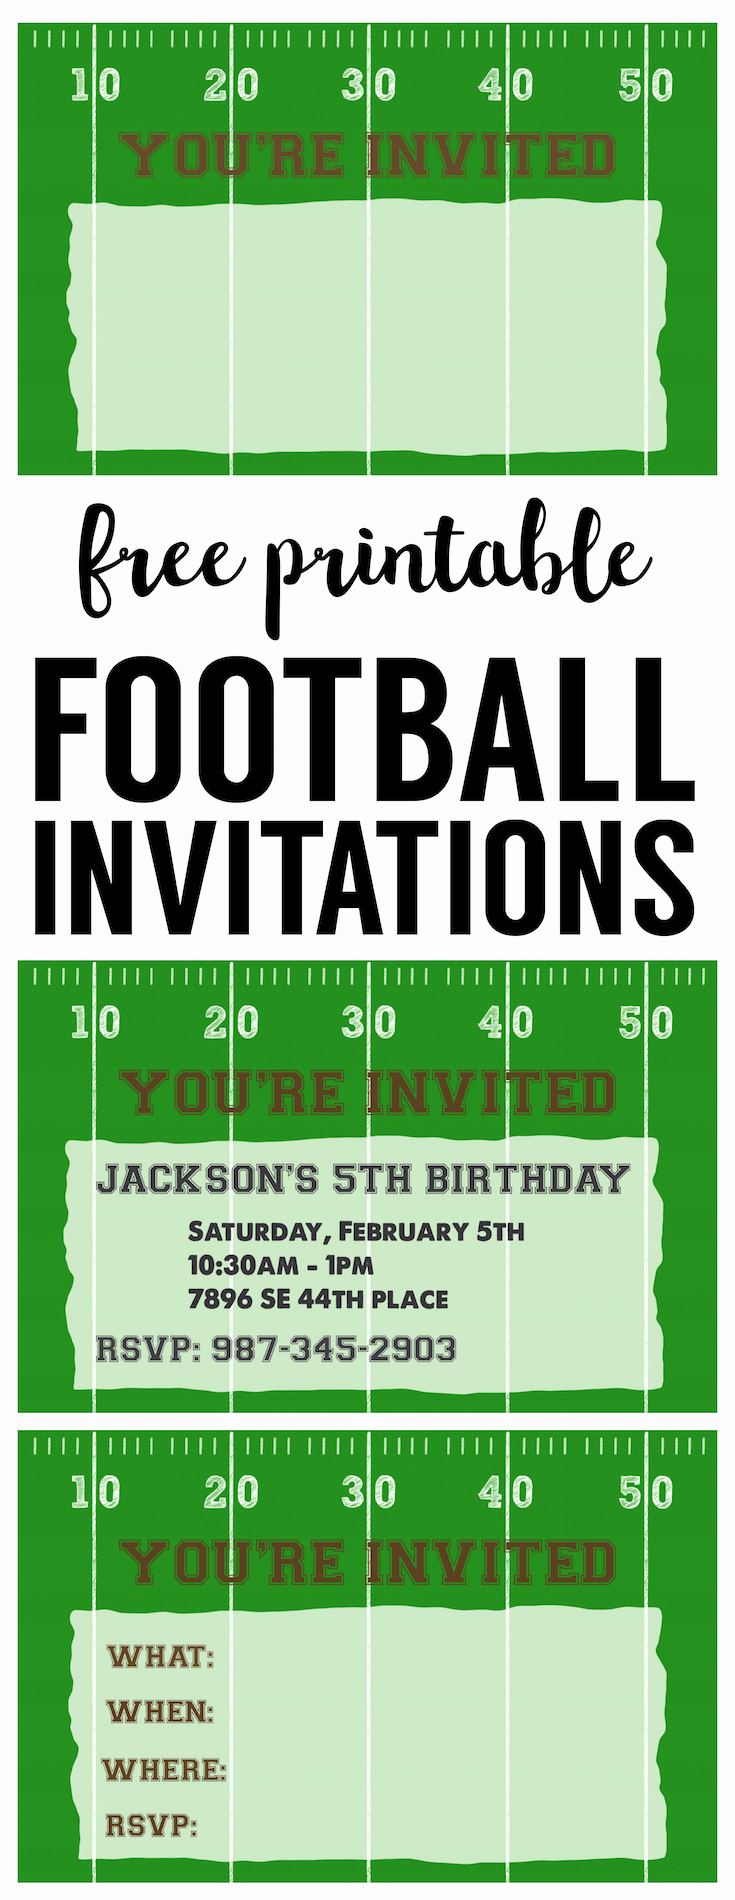 Superbowl Party Invitation Template Best Of Football Party Invitation Template Free Printable